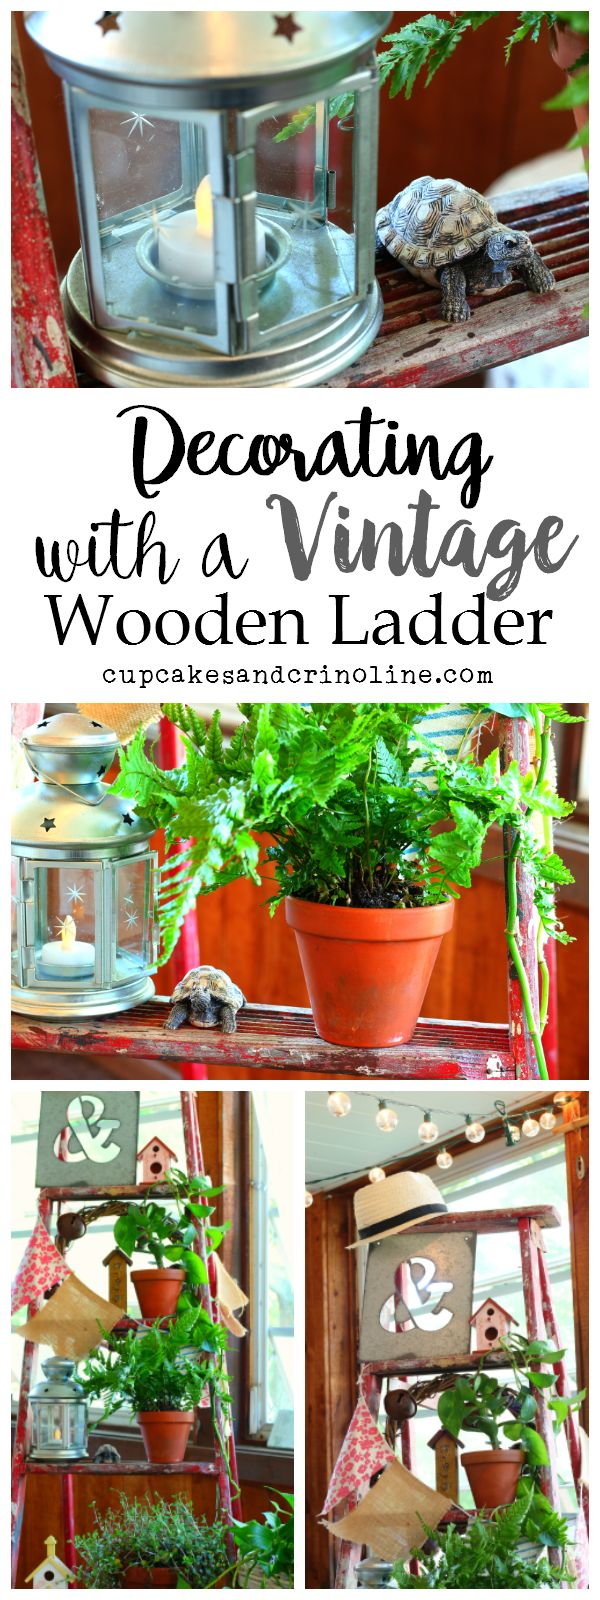 Decorating with a Vintage wooden ladder - more photos and ideas at cupcakesandcrinoline.com Decorating with memories~ Popular pin!